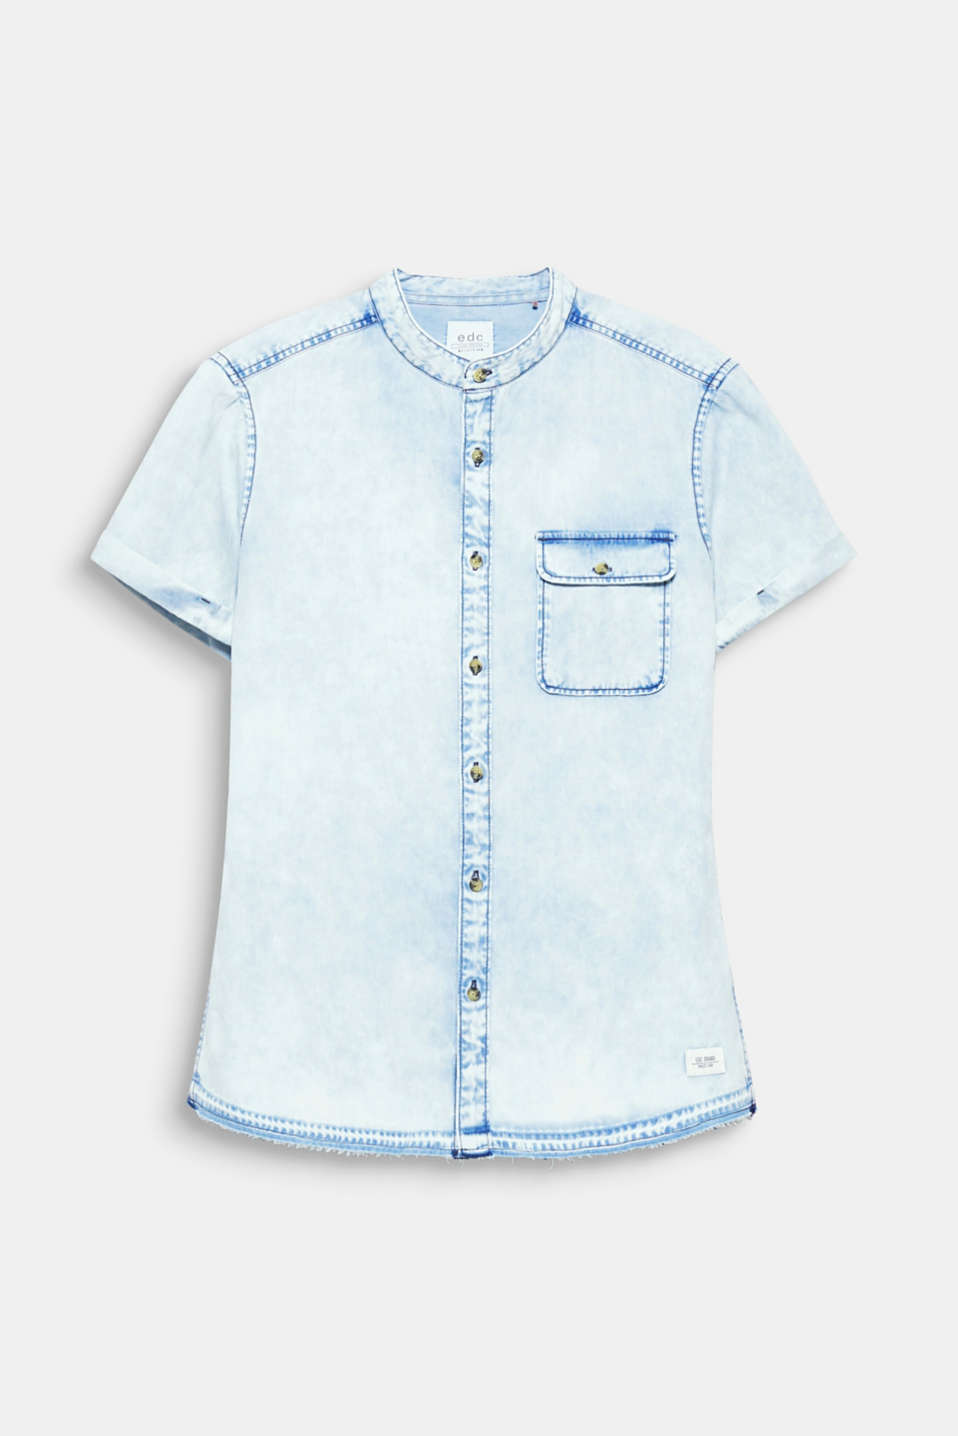 We love denim! The urban look and individual indigo dye make this short sleeve shirt an eye-catcher.